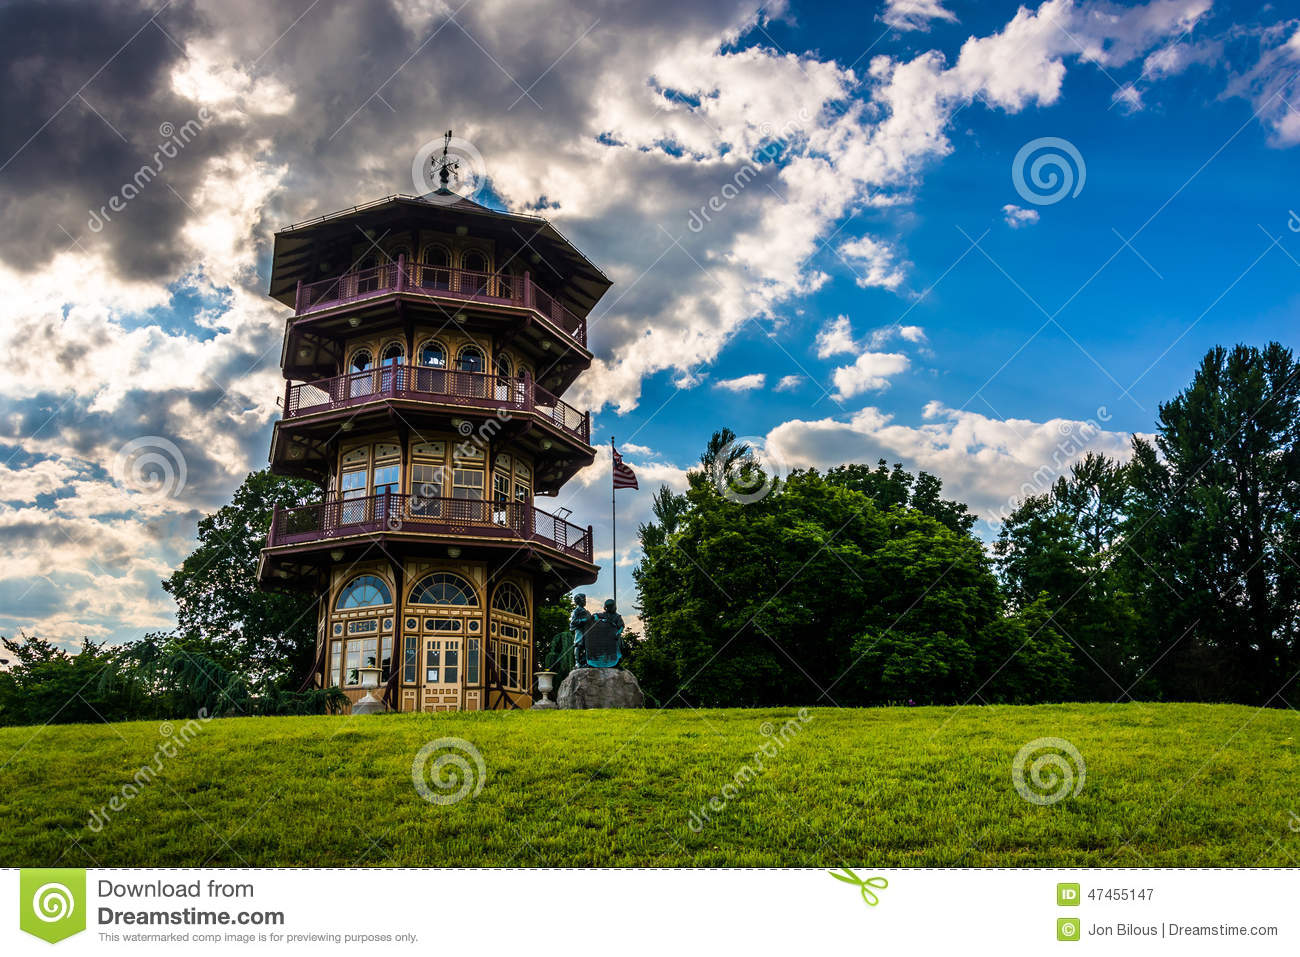 The pagoda at Patterson Park in Baltimore, Maryland.